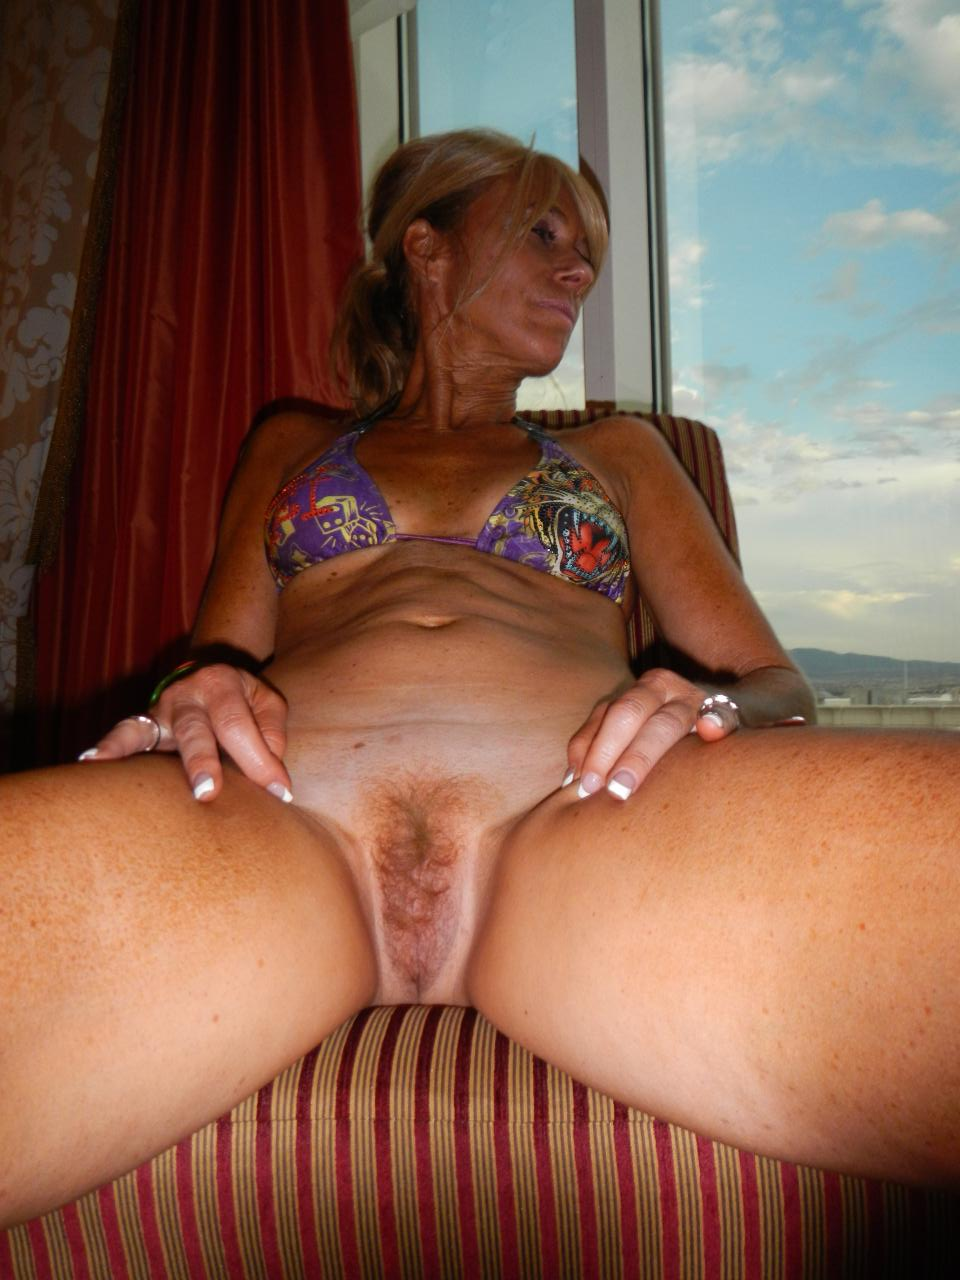 Hairy amateur milf with great hangers fucked